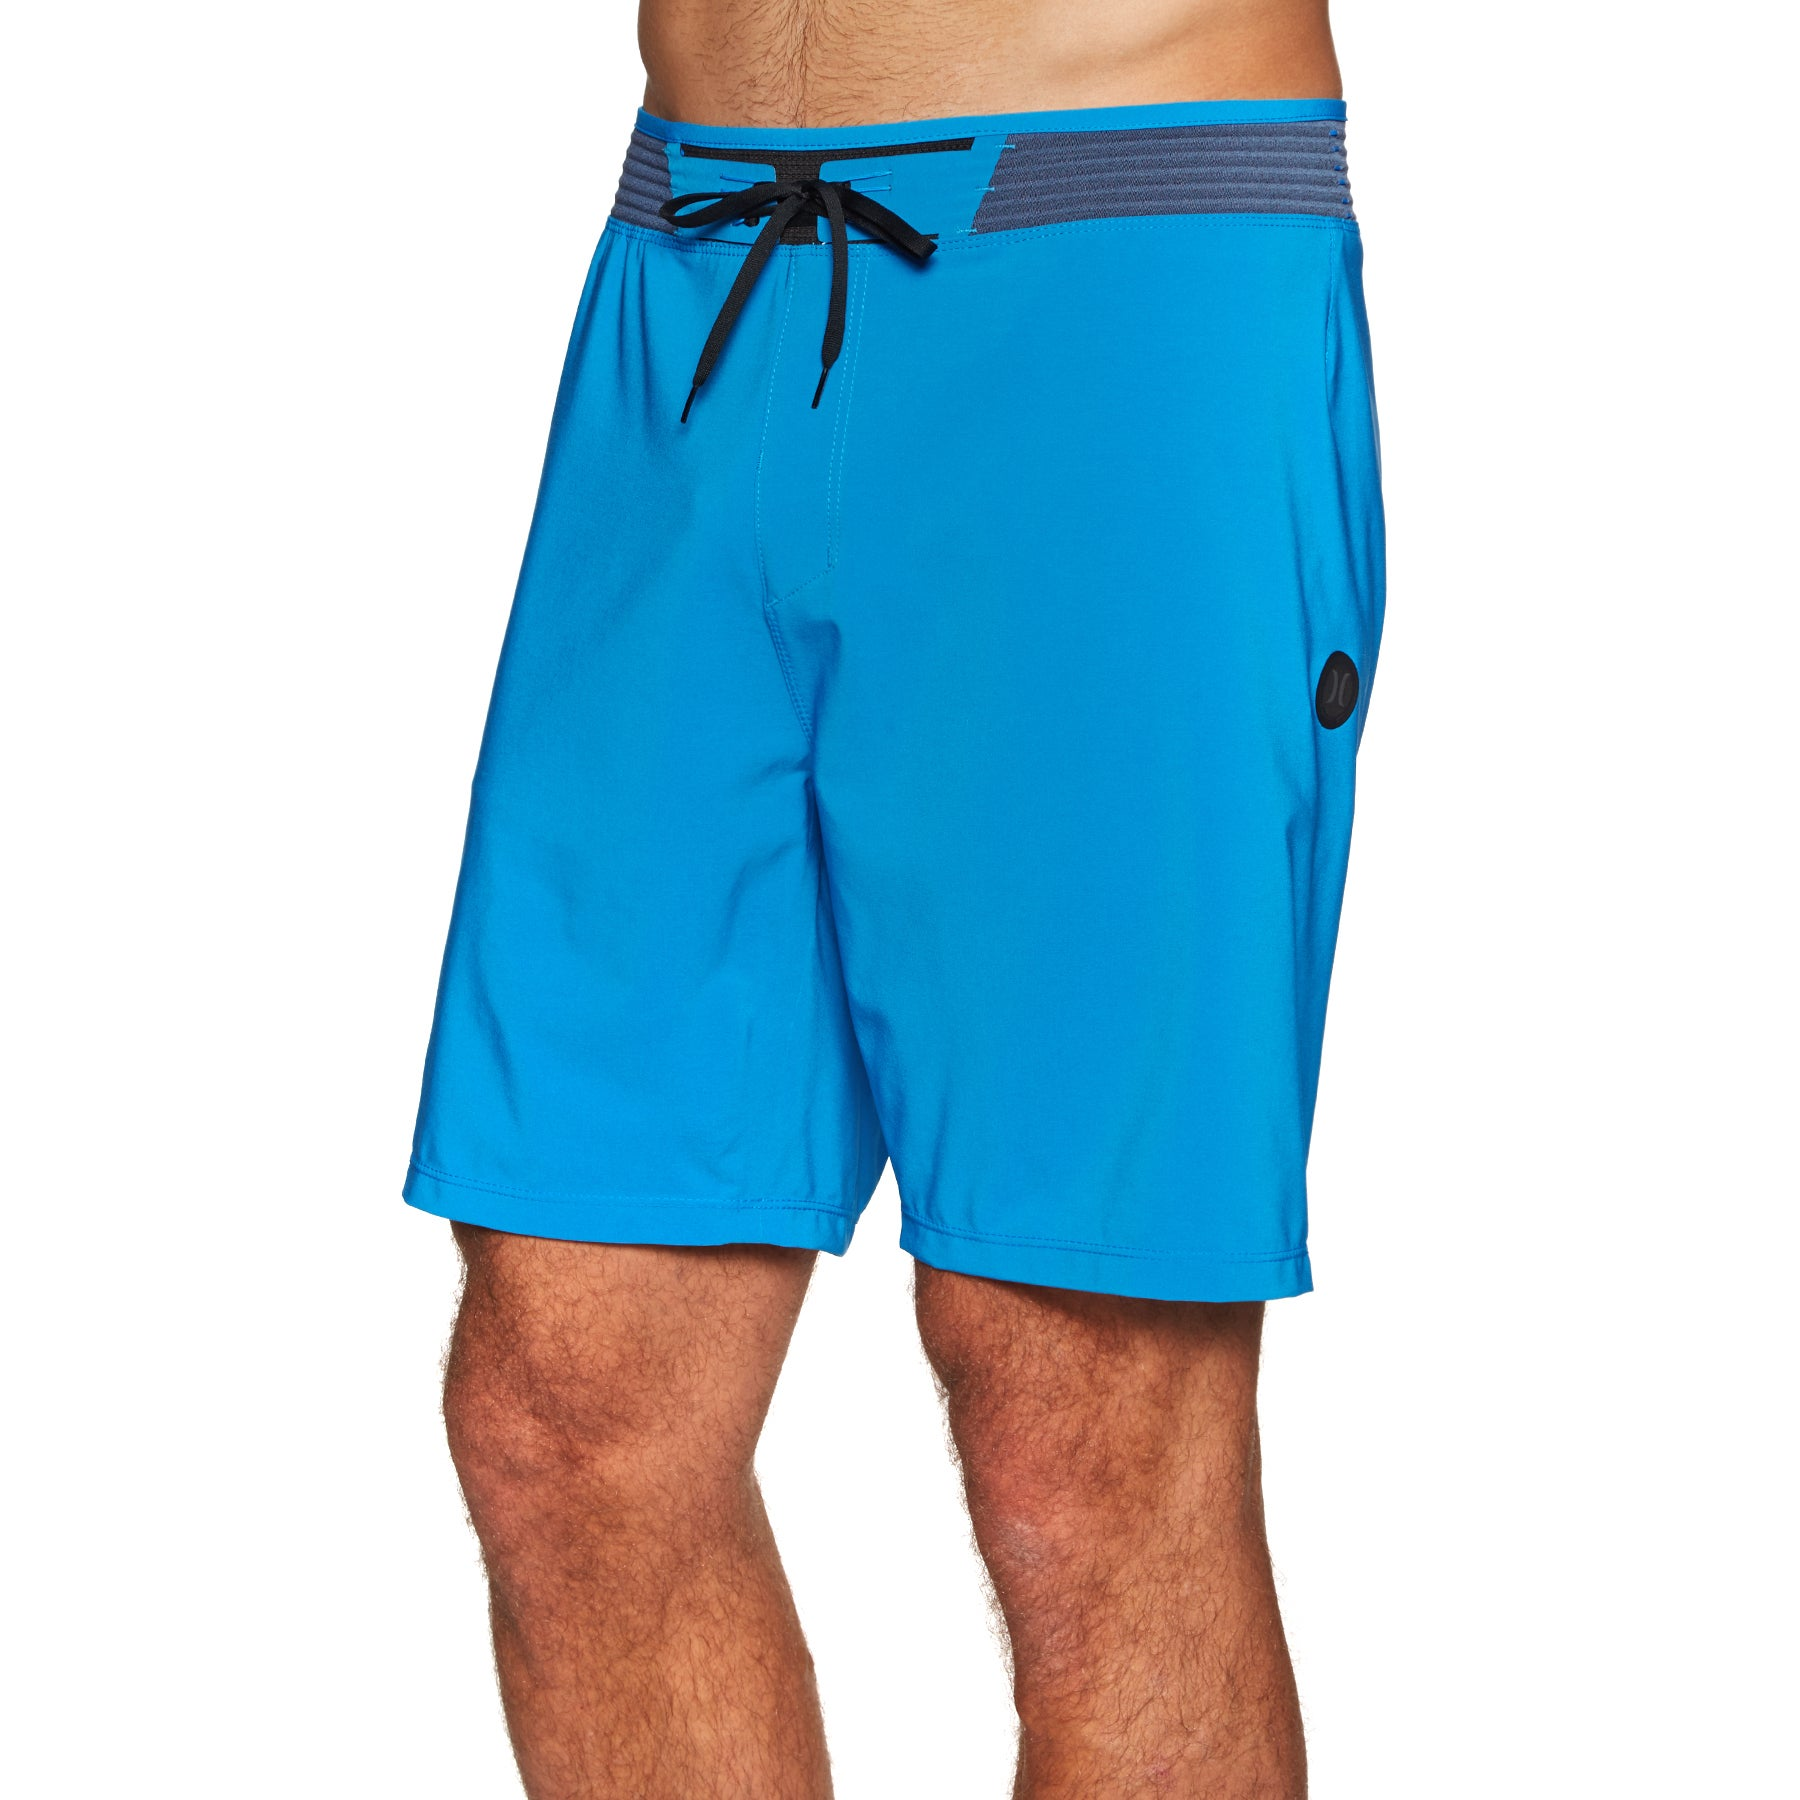 Hurley Phantom Hyperweave 3.0 18in Boardshorts - Photo Blue